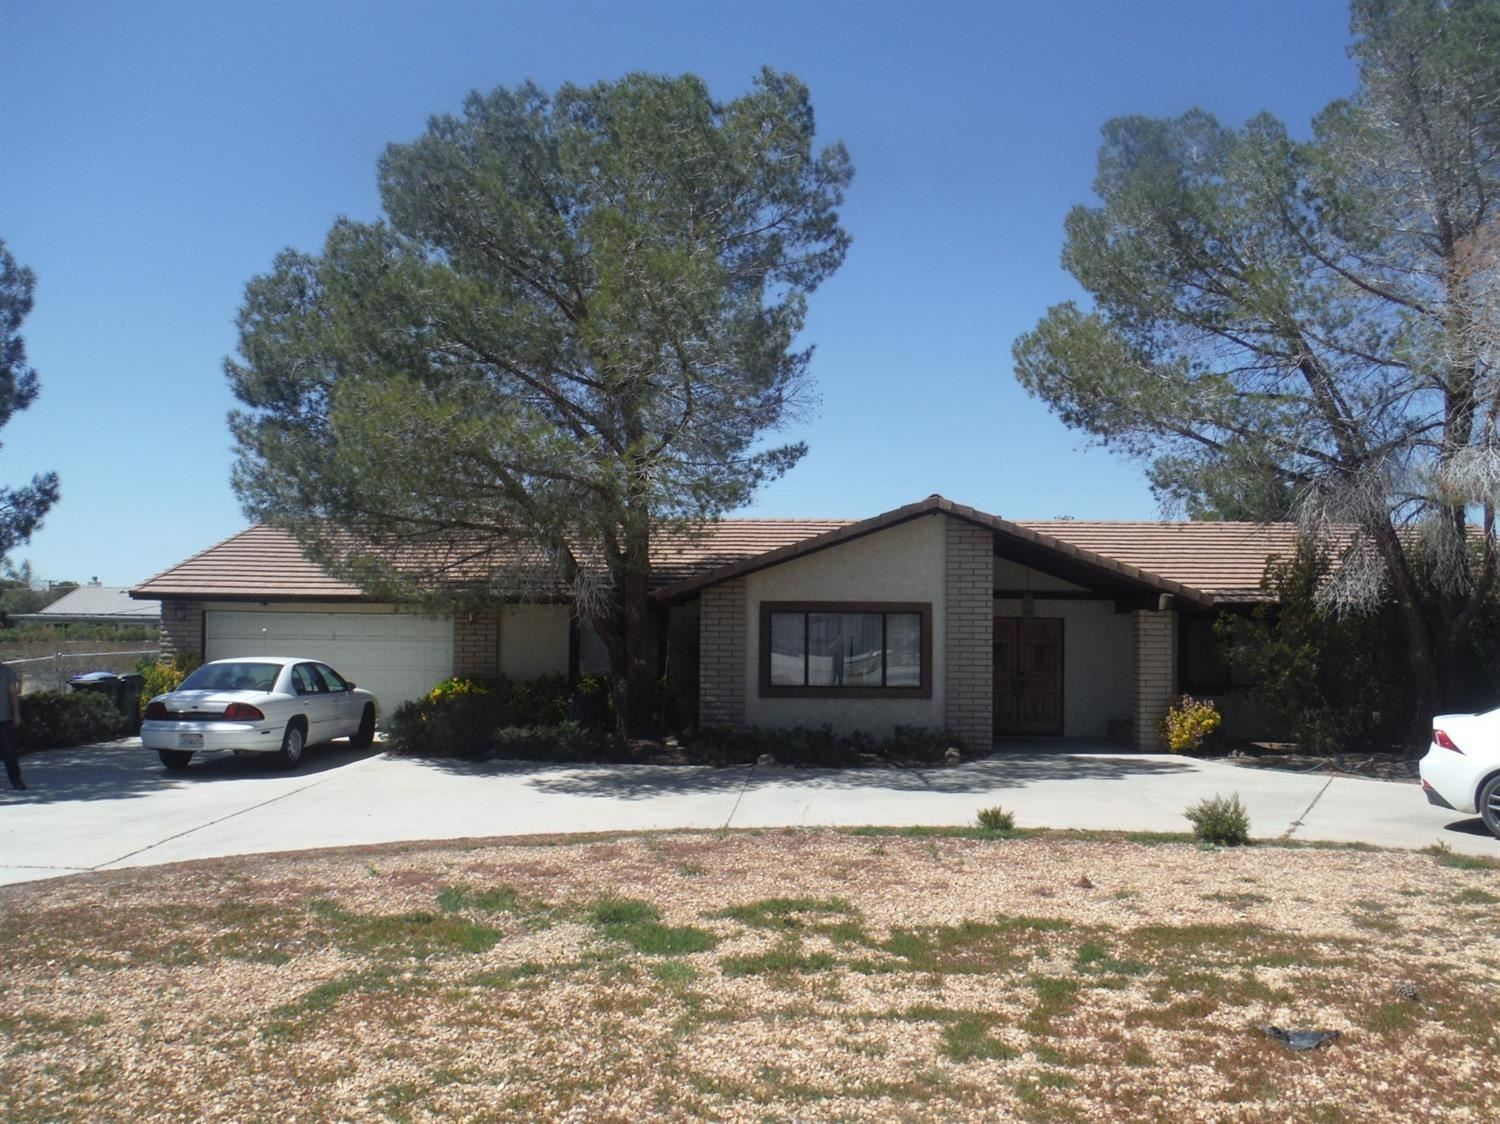 16360 Tao Road, Apple Valley, CA 92307 - MLS#: 523488